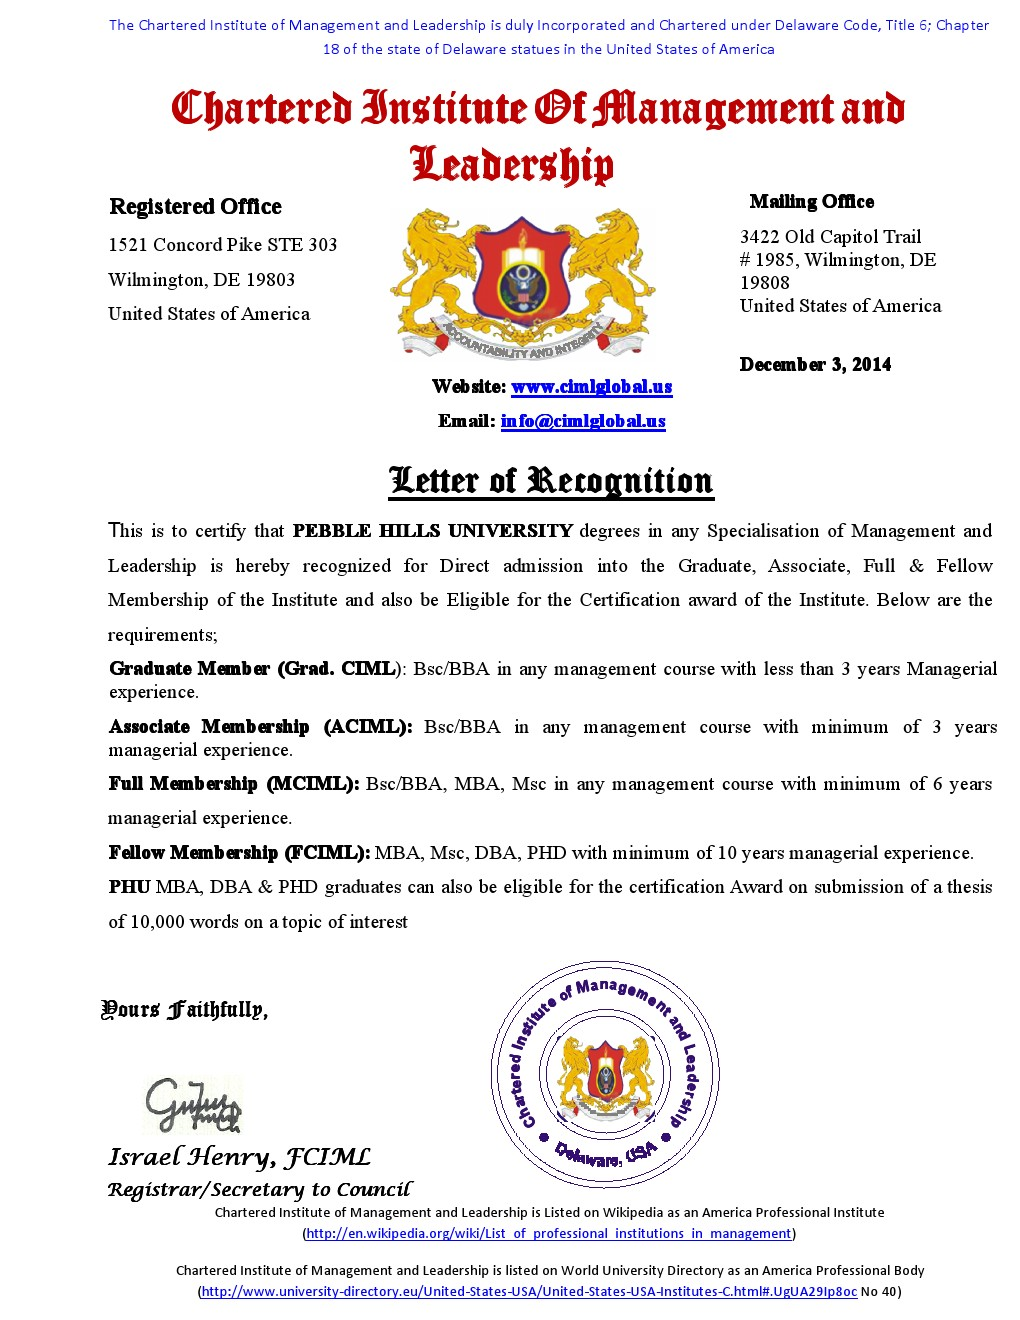 University Letter of recognition (1)